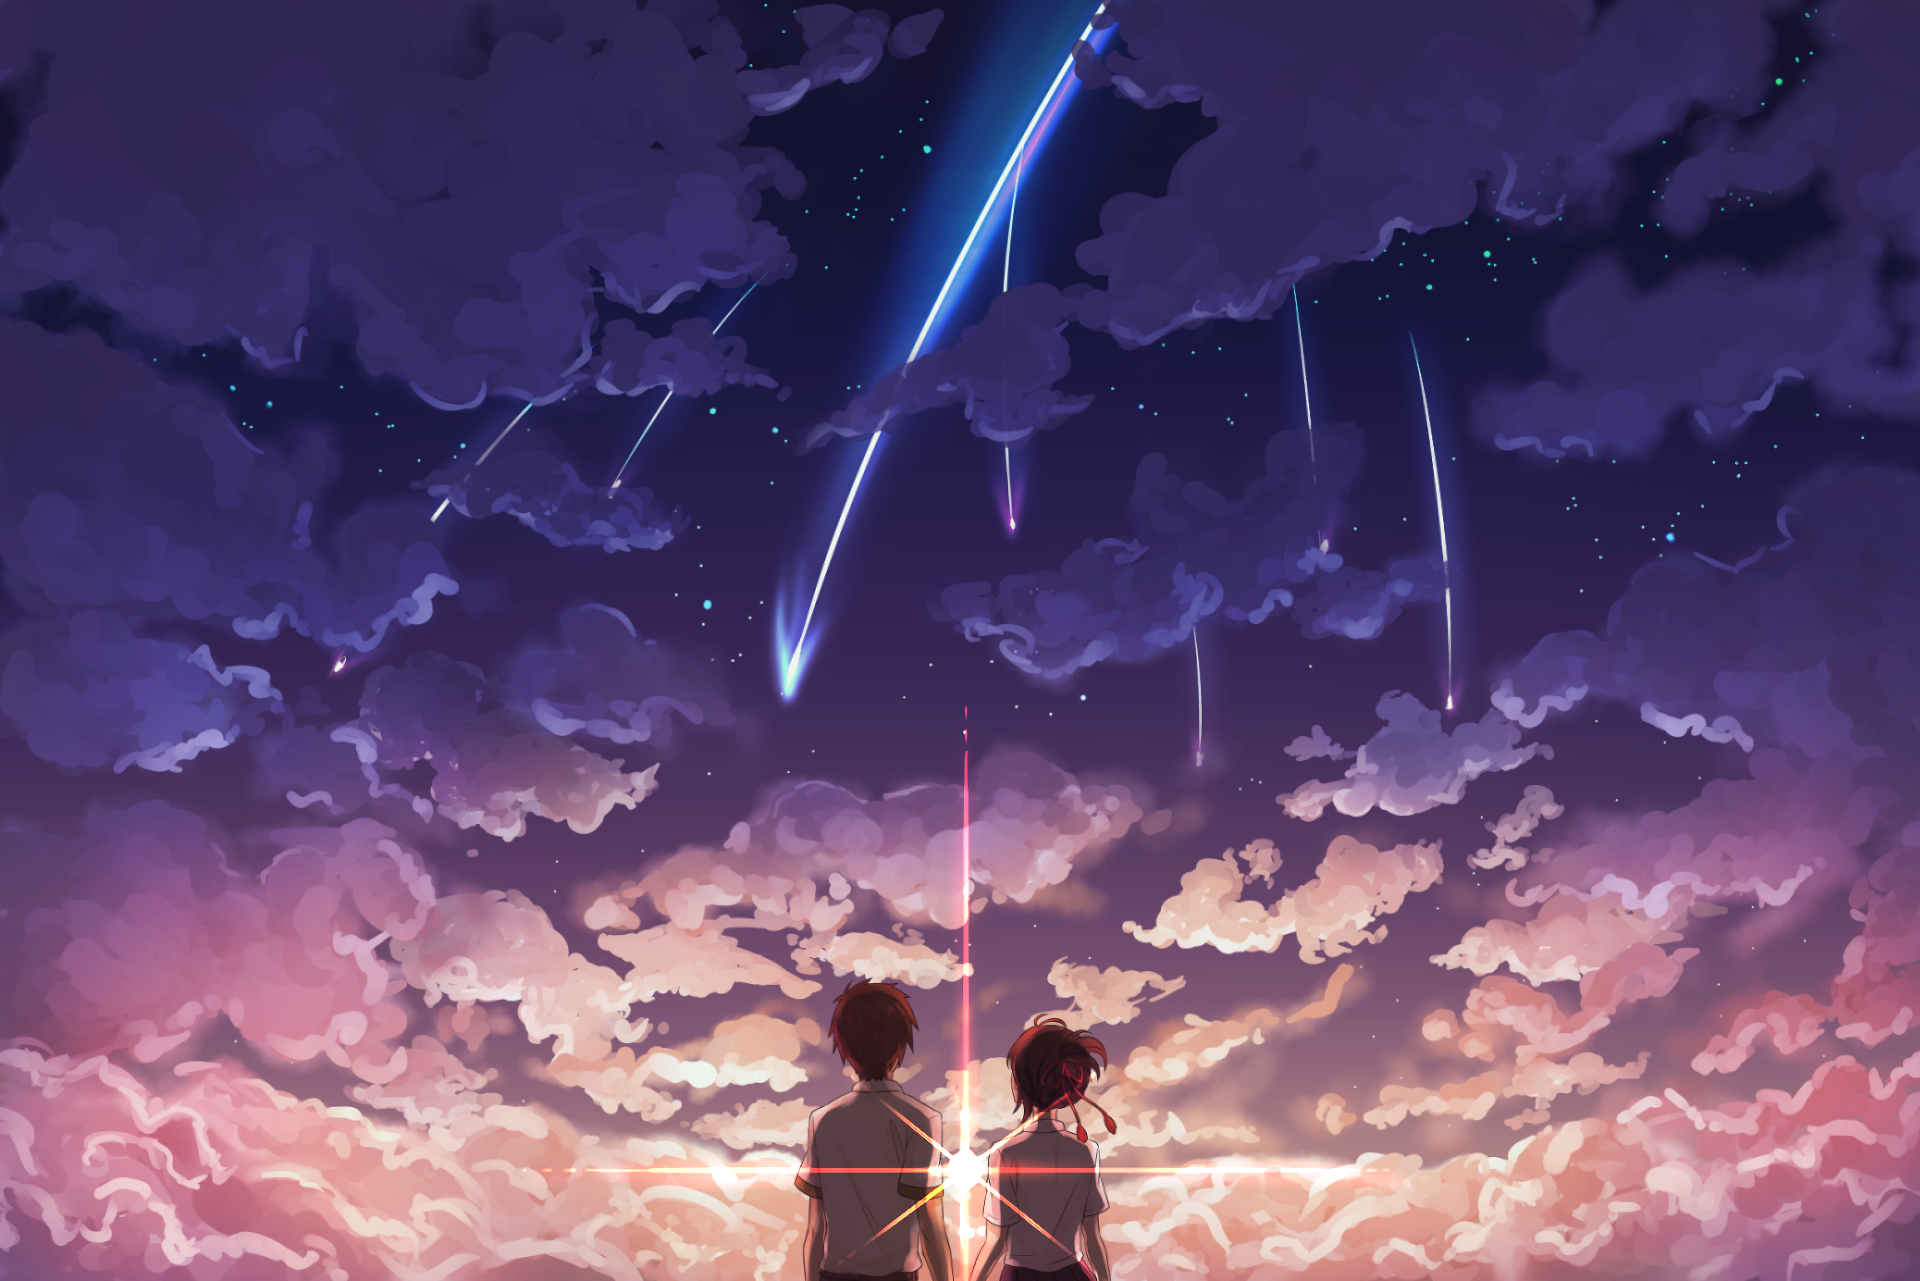 Makoto Shinkai Kimi No Na Wa Wallpaper Full Hd Free Download Anime Personagens De Anime Cenario Anime